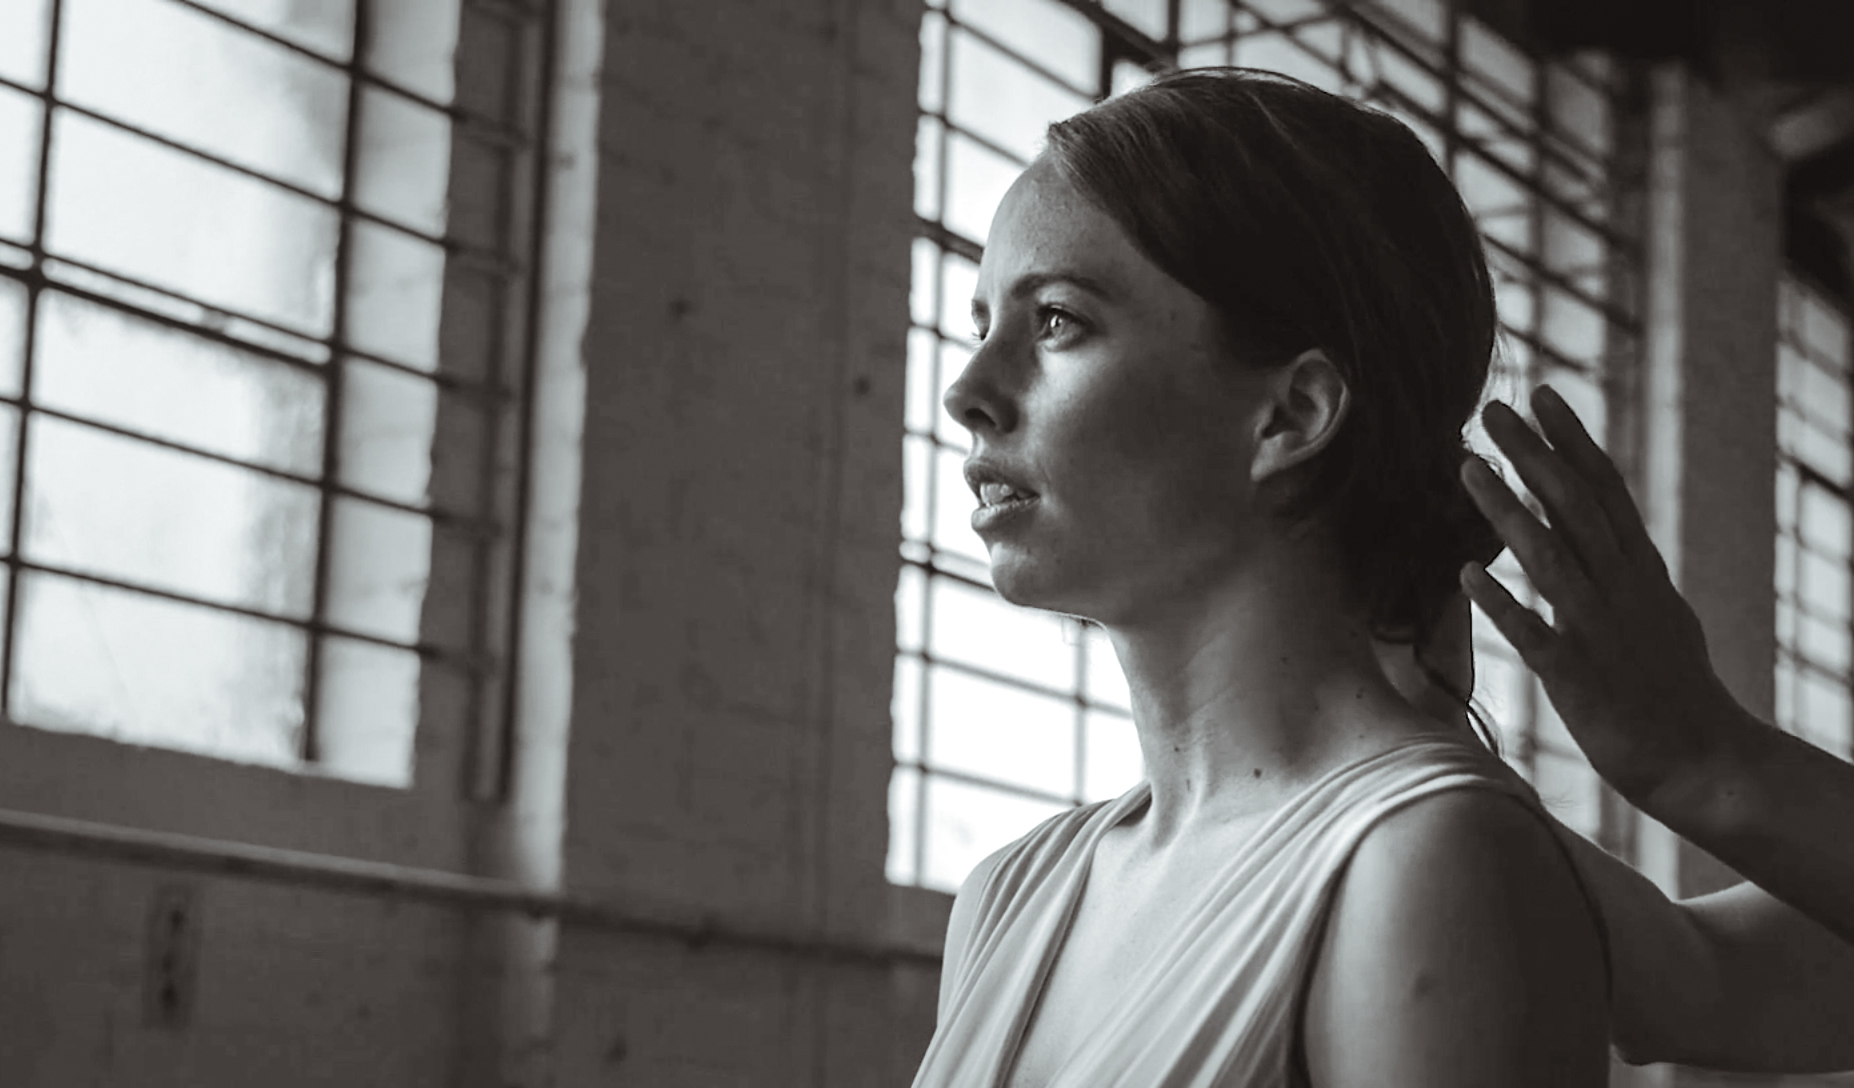 Lucy Doherty in a frame from her short dance film Reminiscence. Cinematography: Patrick Mazzolo